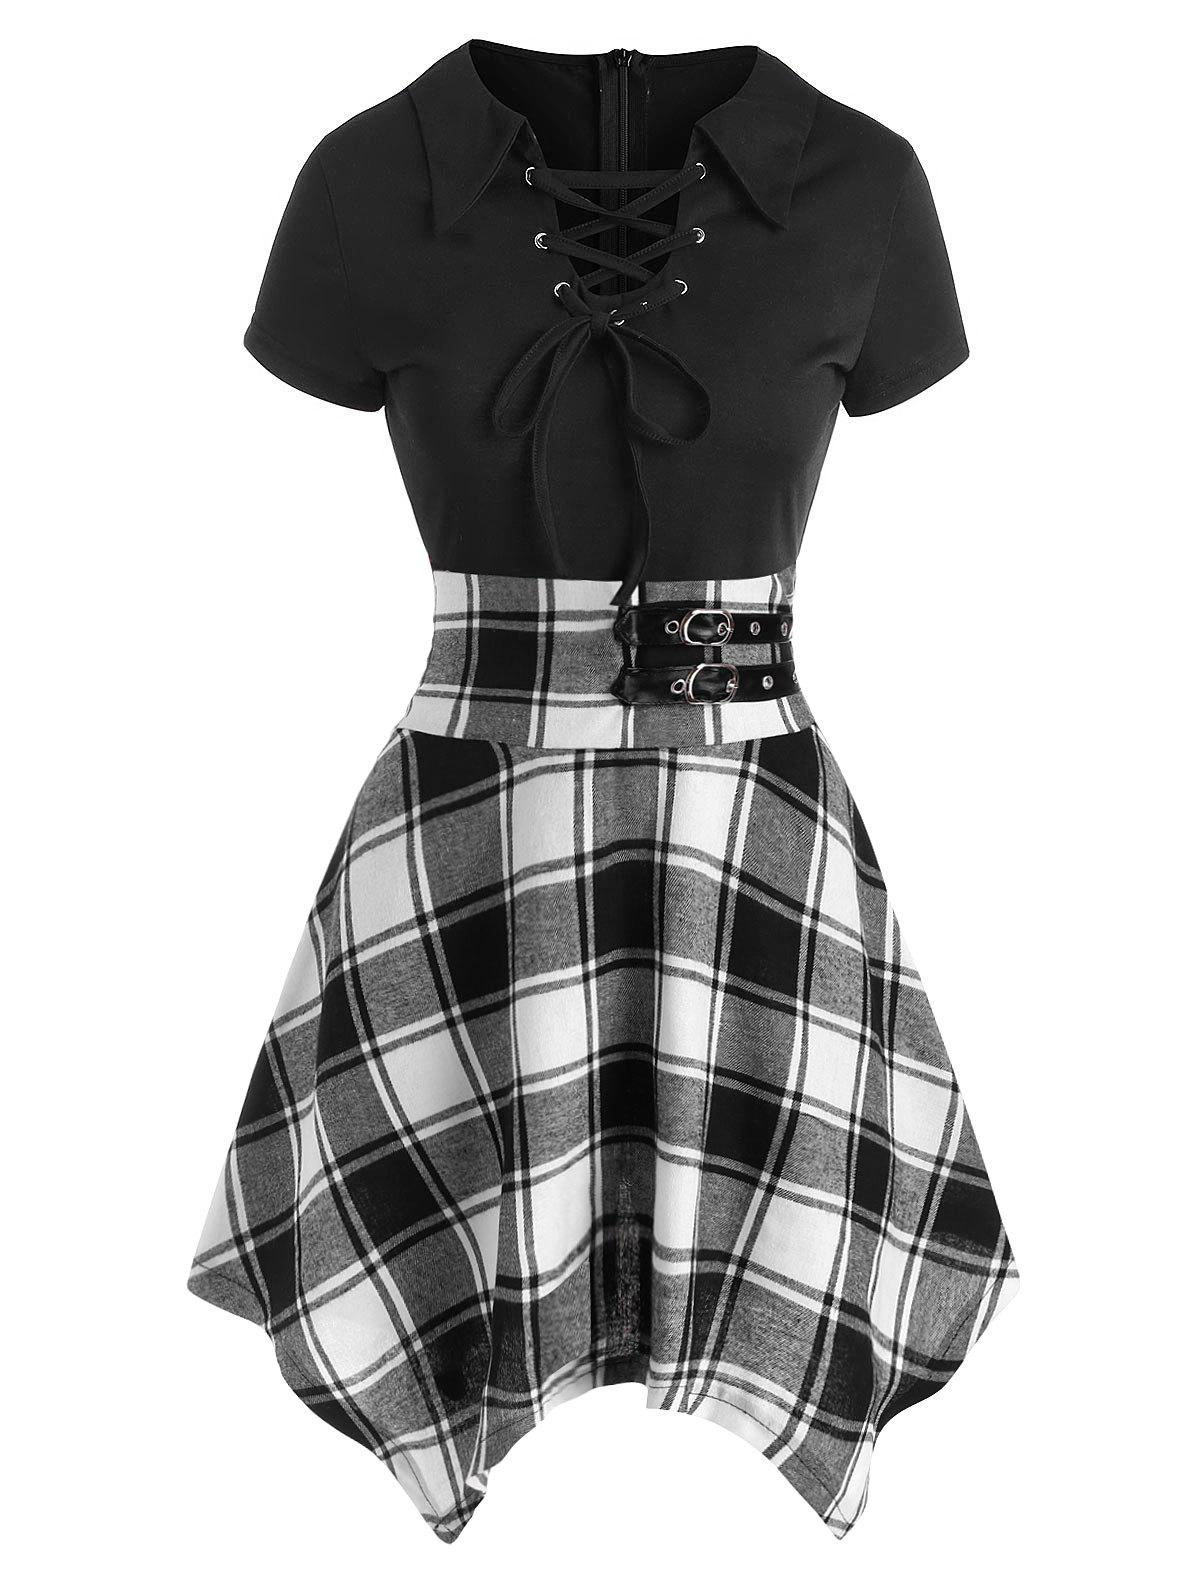 Shops Lace Up Plaid Buckle Embellished Handkerchief Dress